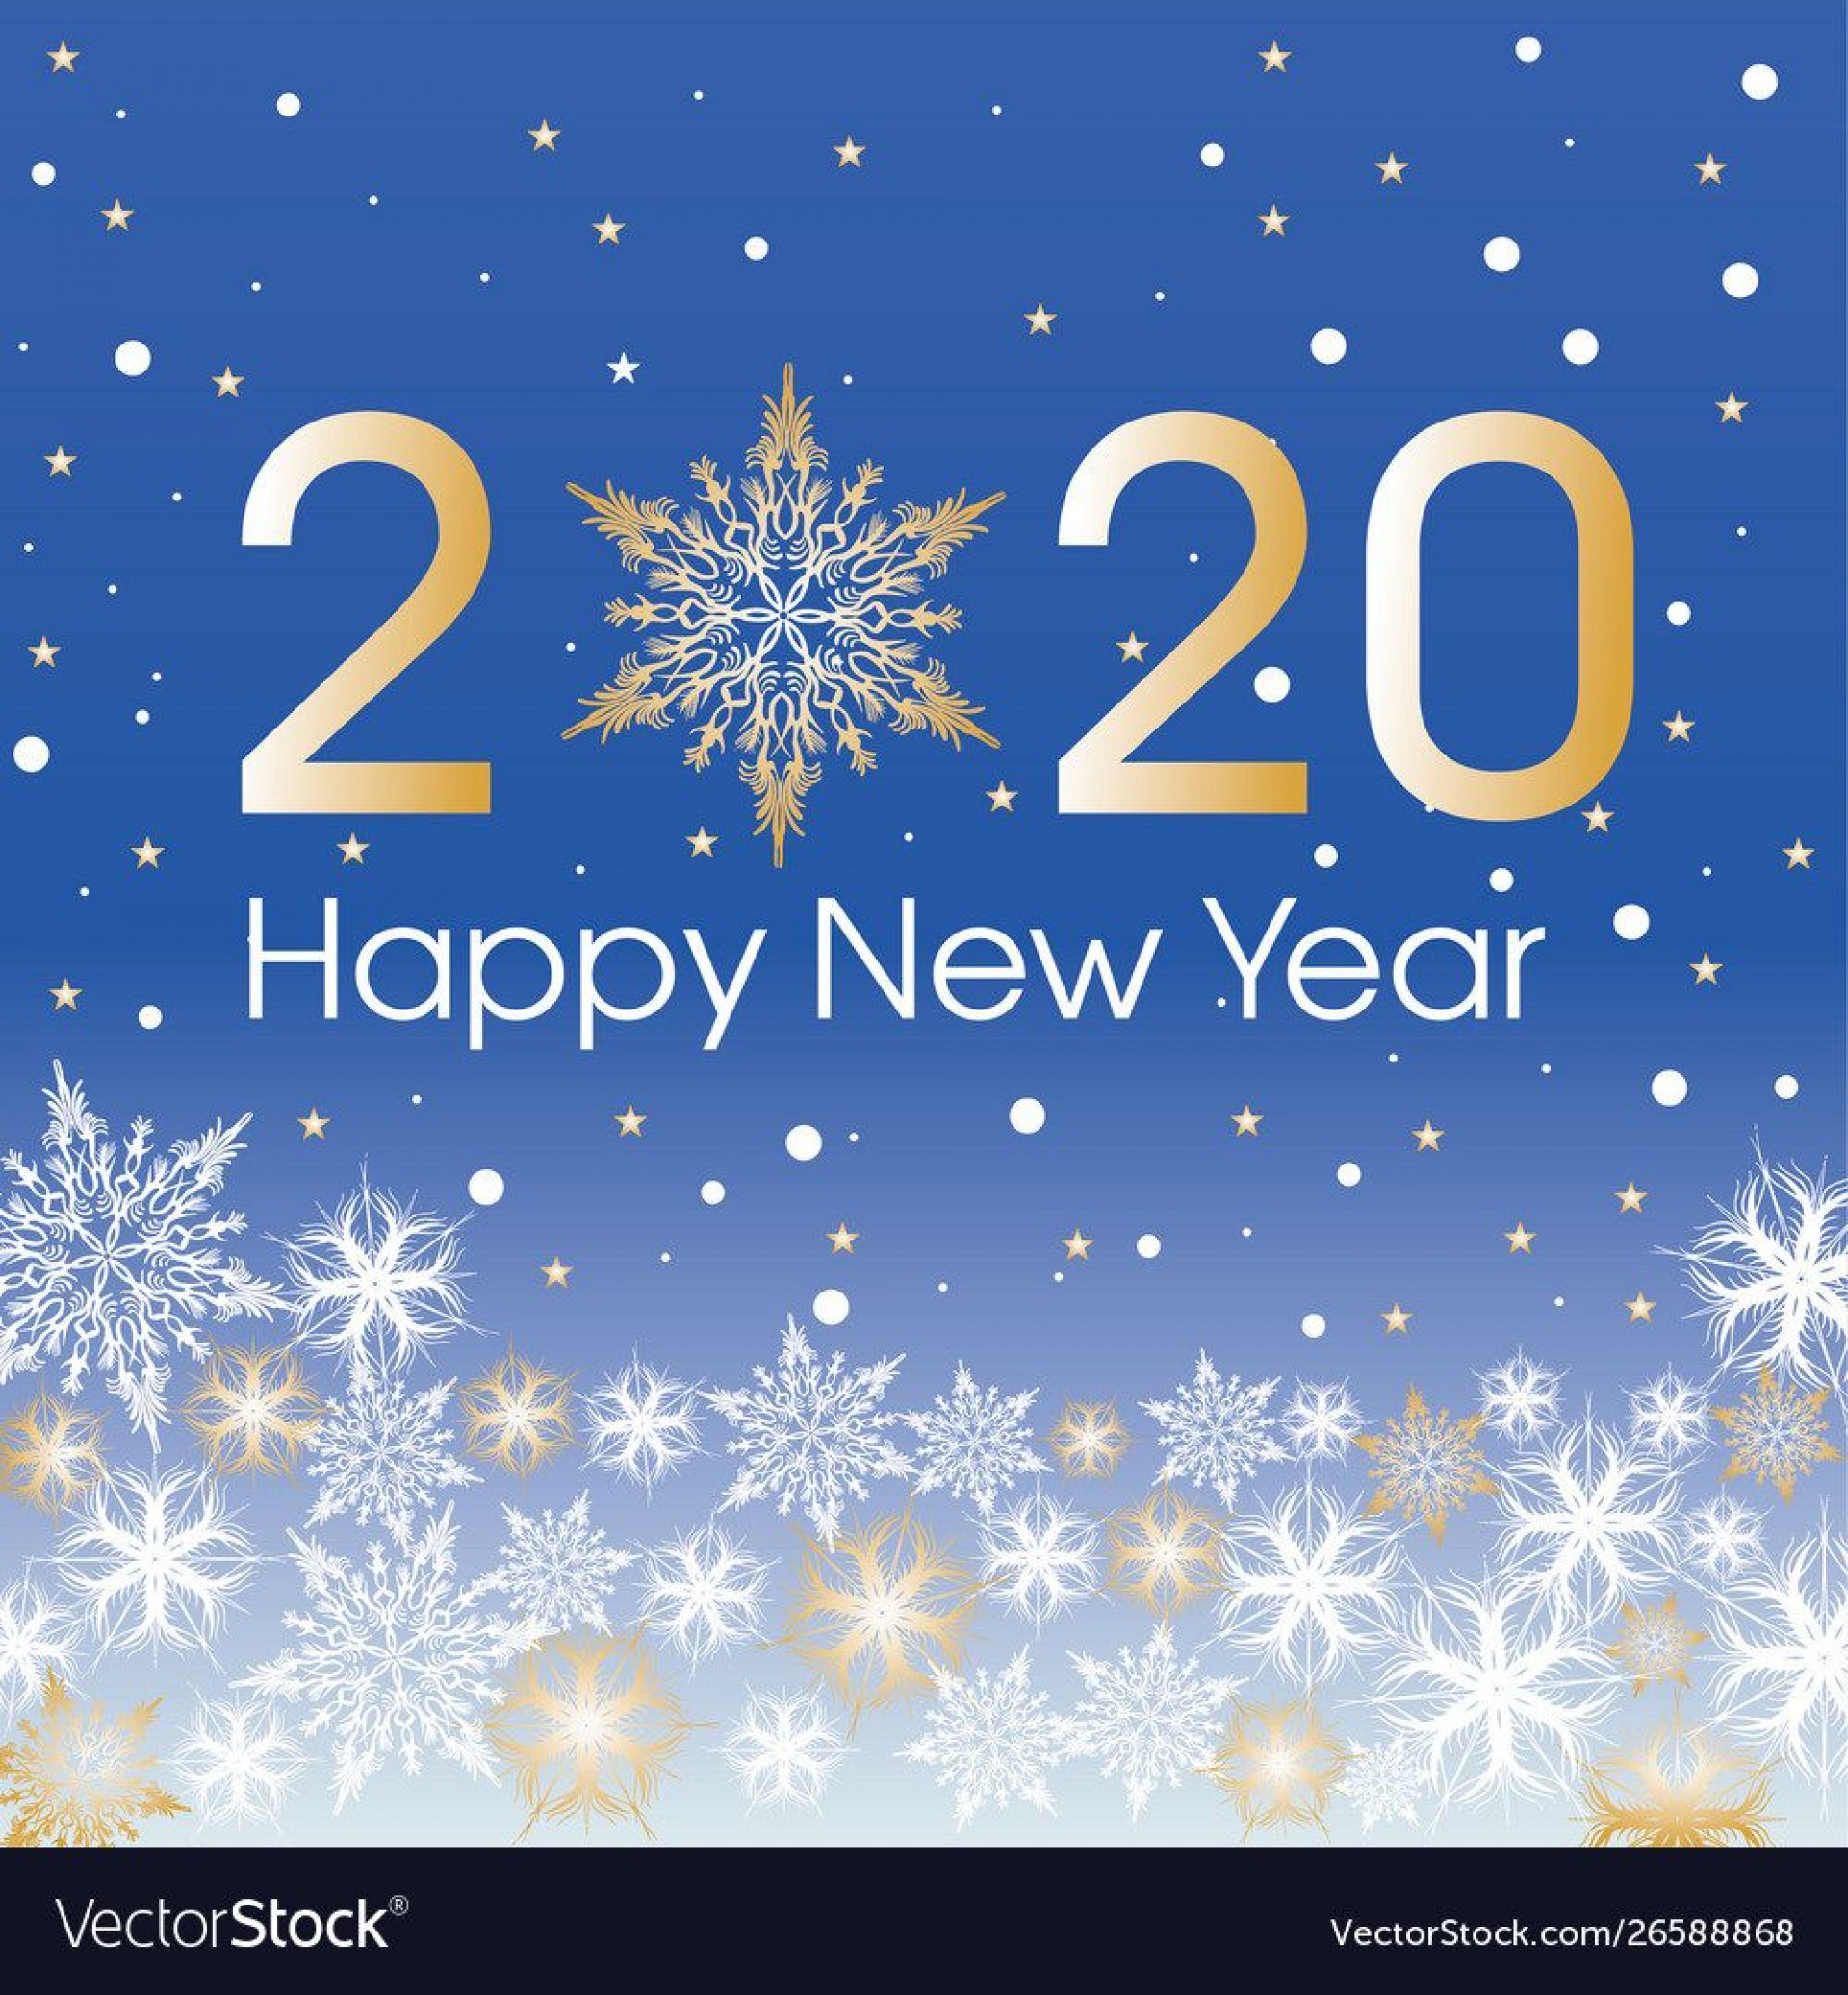 001 Surprising New Year Card Template High Def  Happy Chinese 2020 Free1920